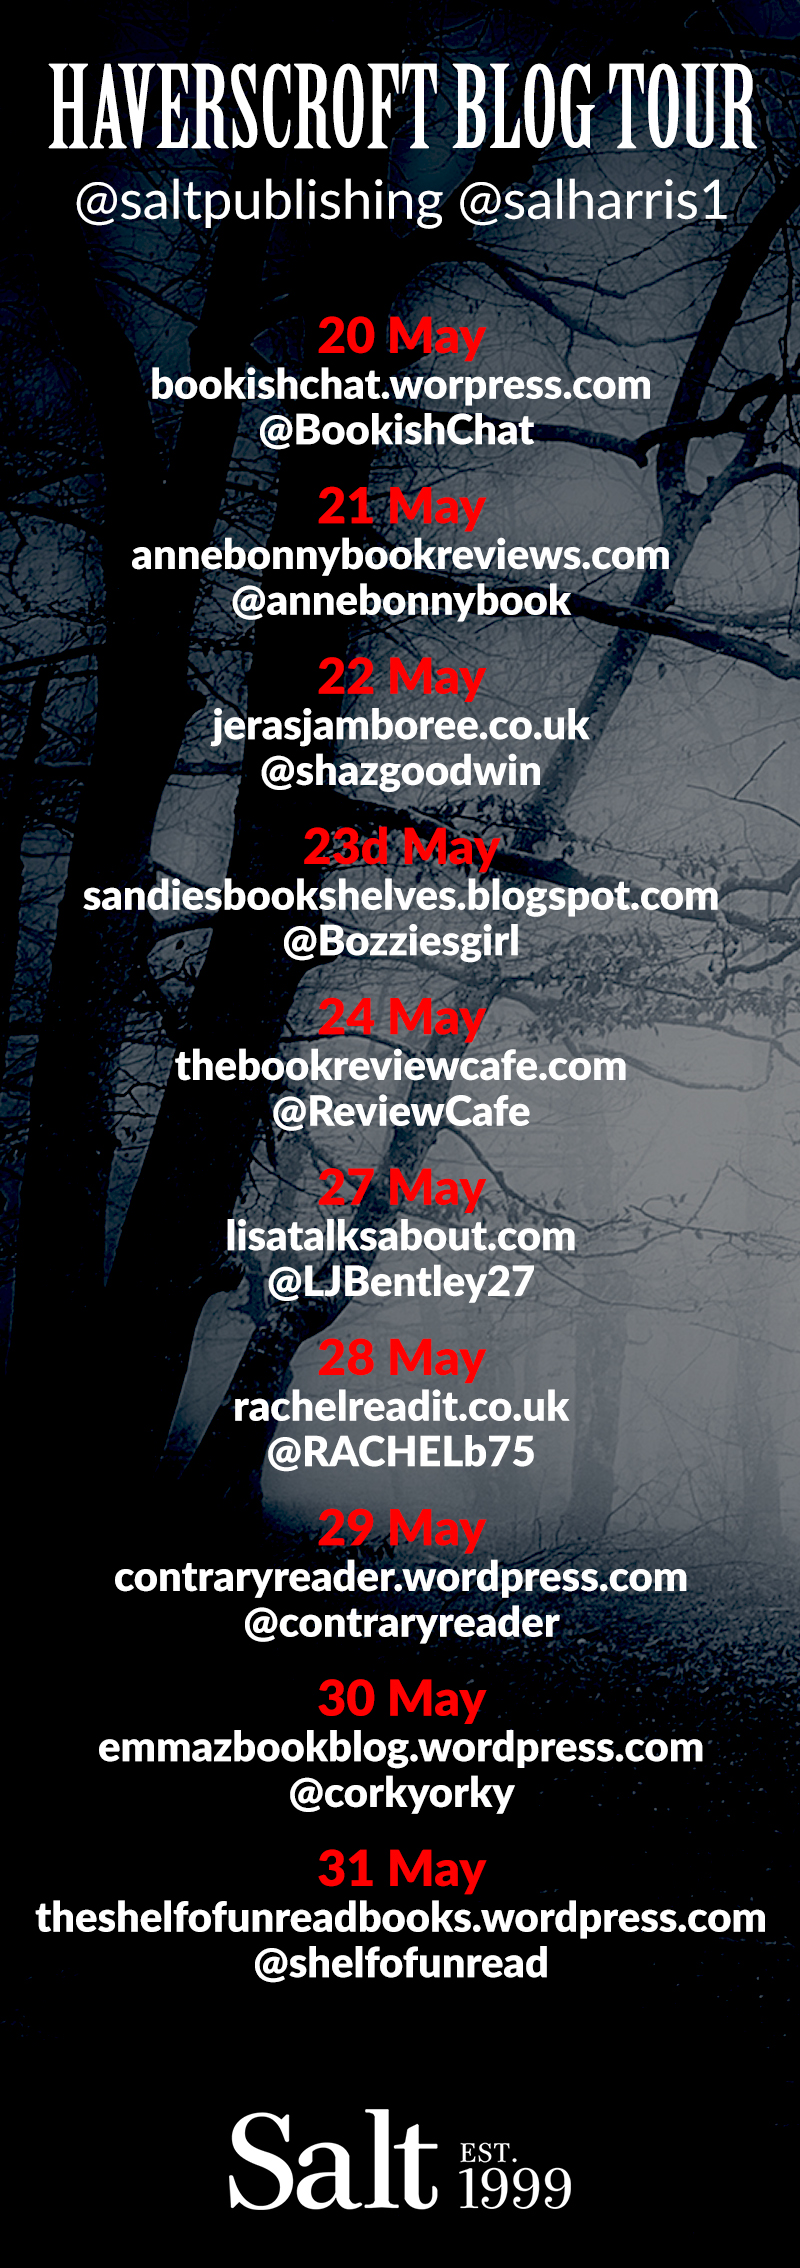 Haverscroft blog tour flyer